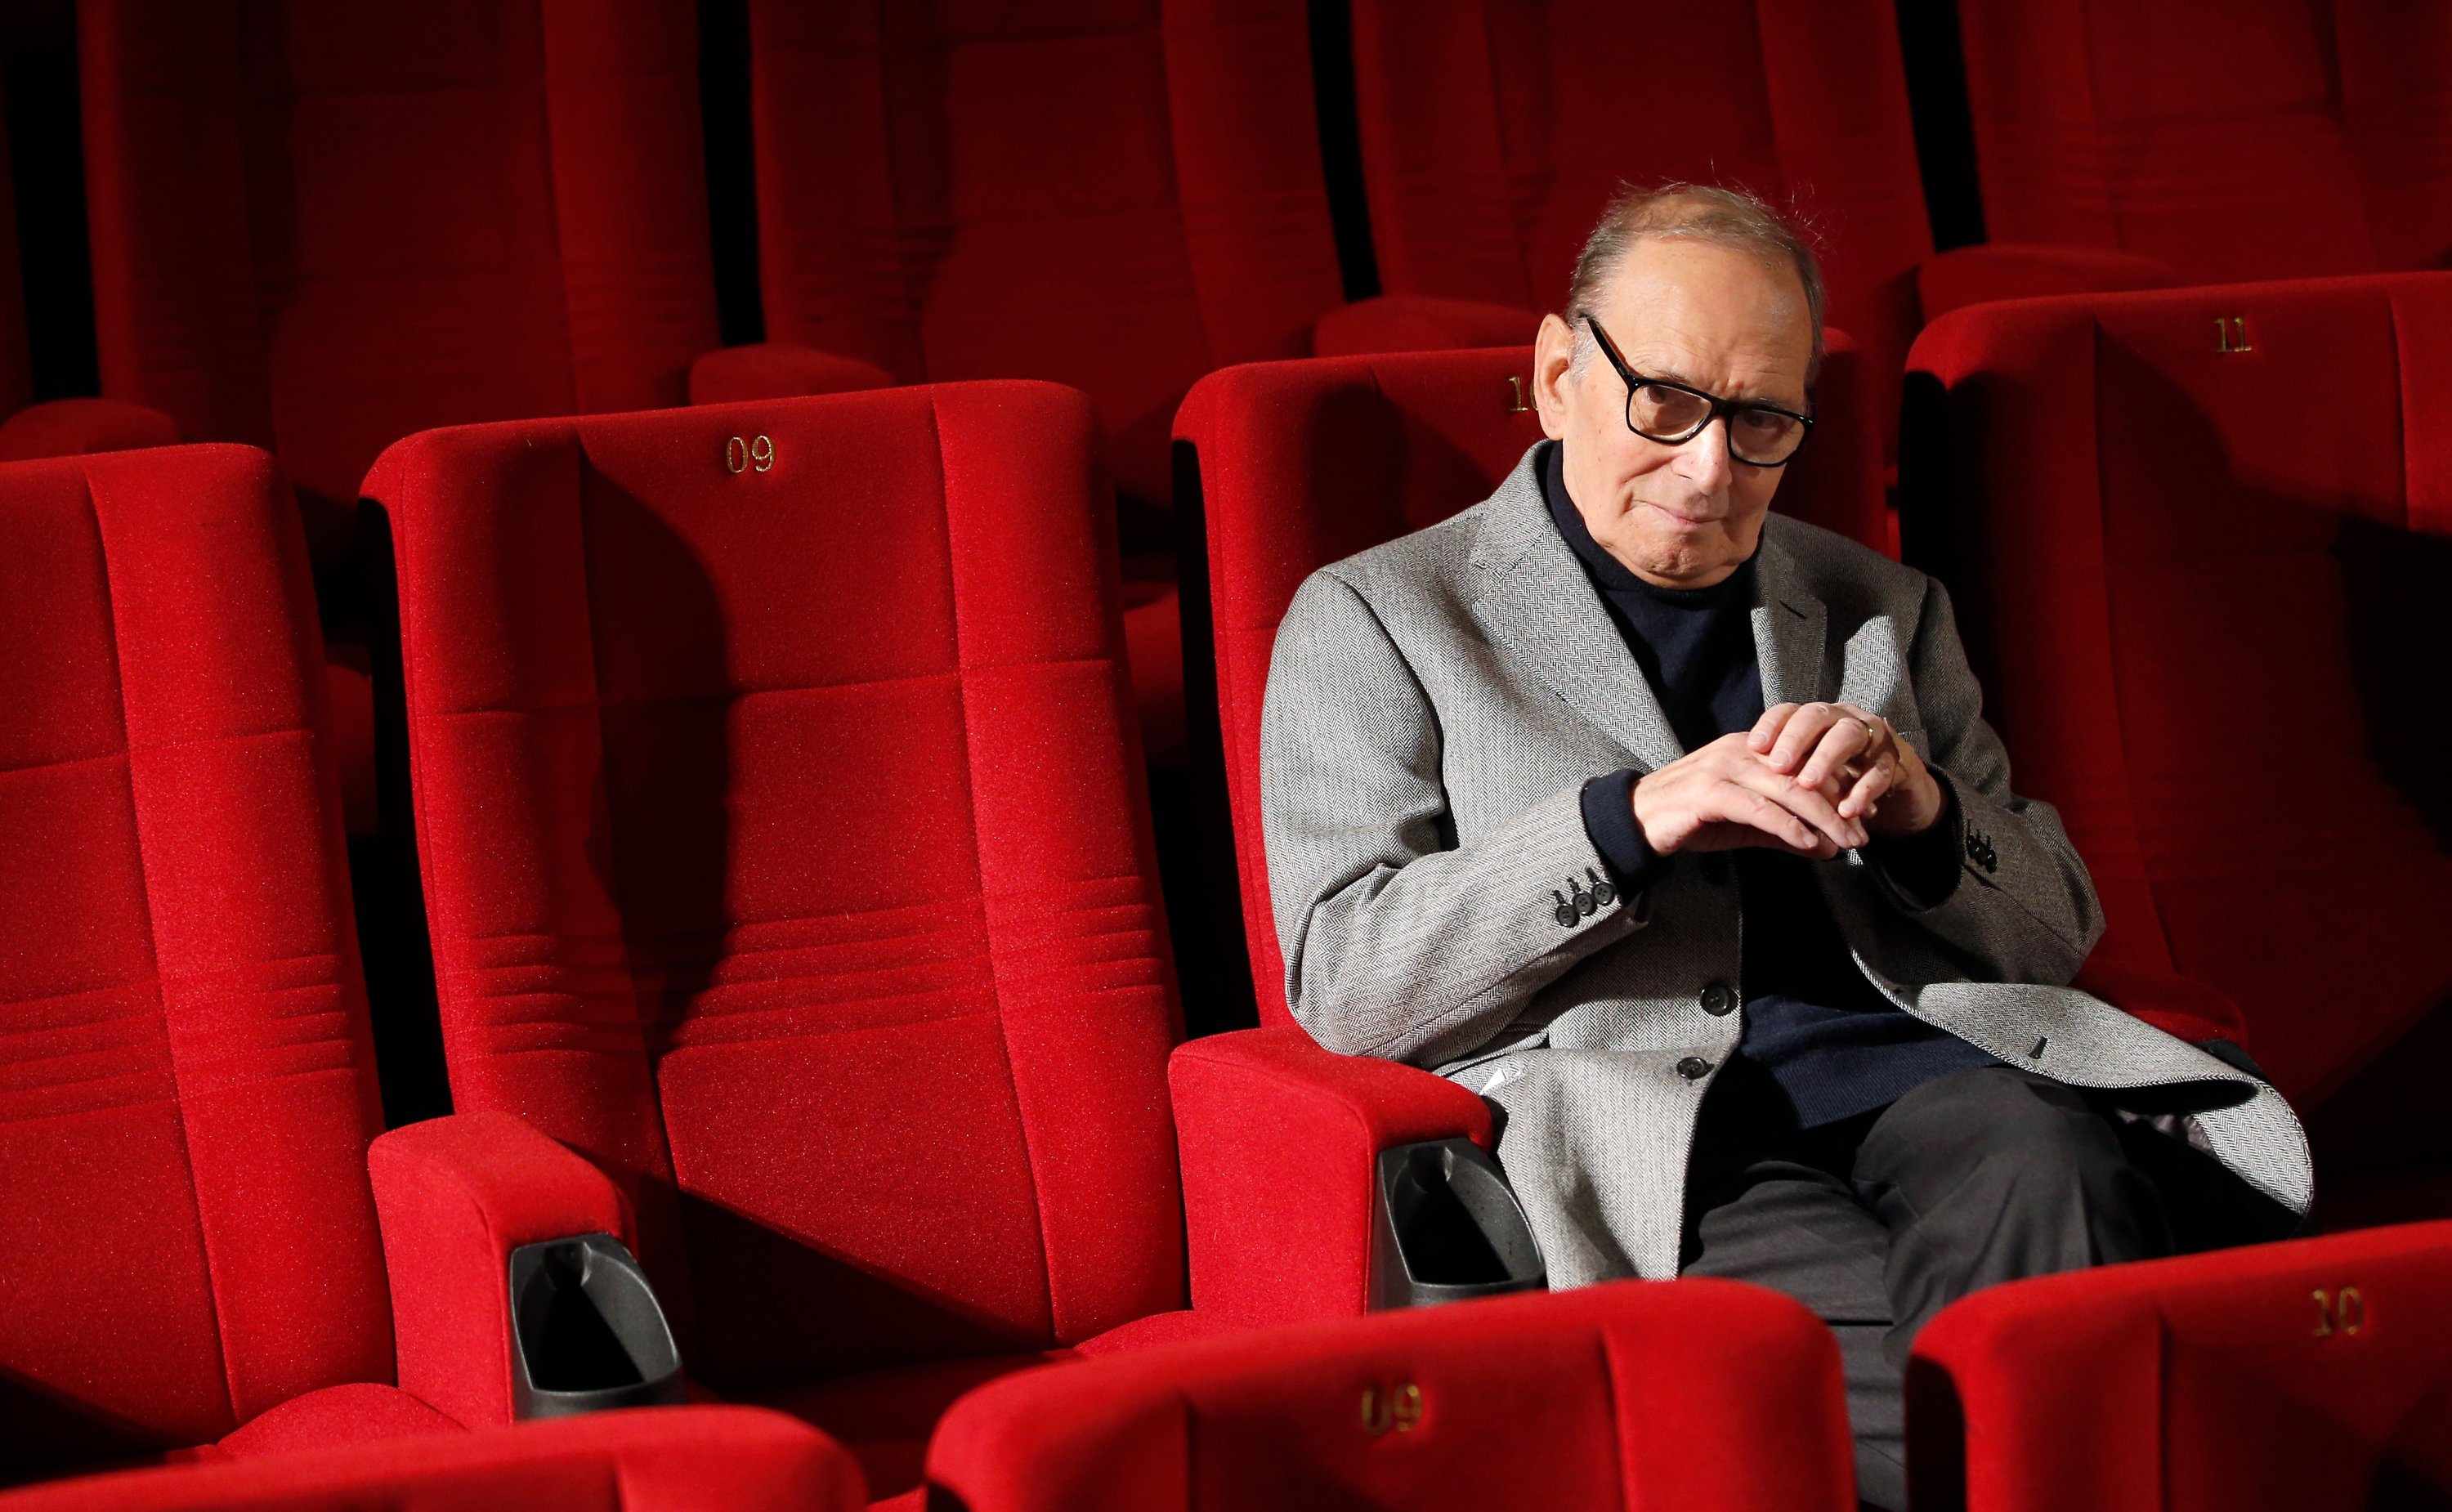 Ennio Morricone, composer and conductor from Italy, poses during a photo call to promote his German 2014 concerts, in Berlin, Germany, Dec. 6, 2013. (AP Photo)